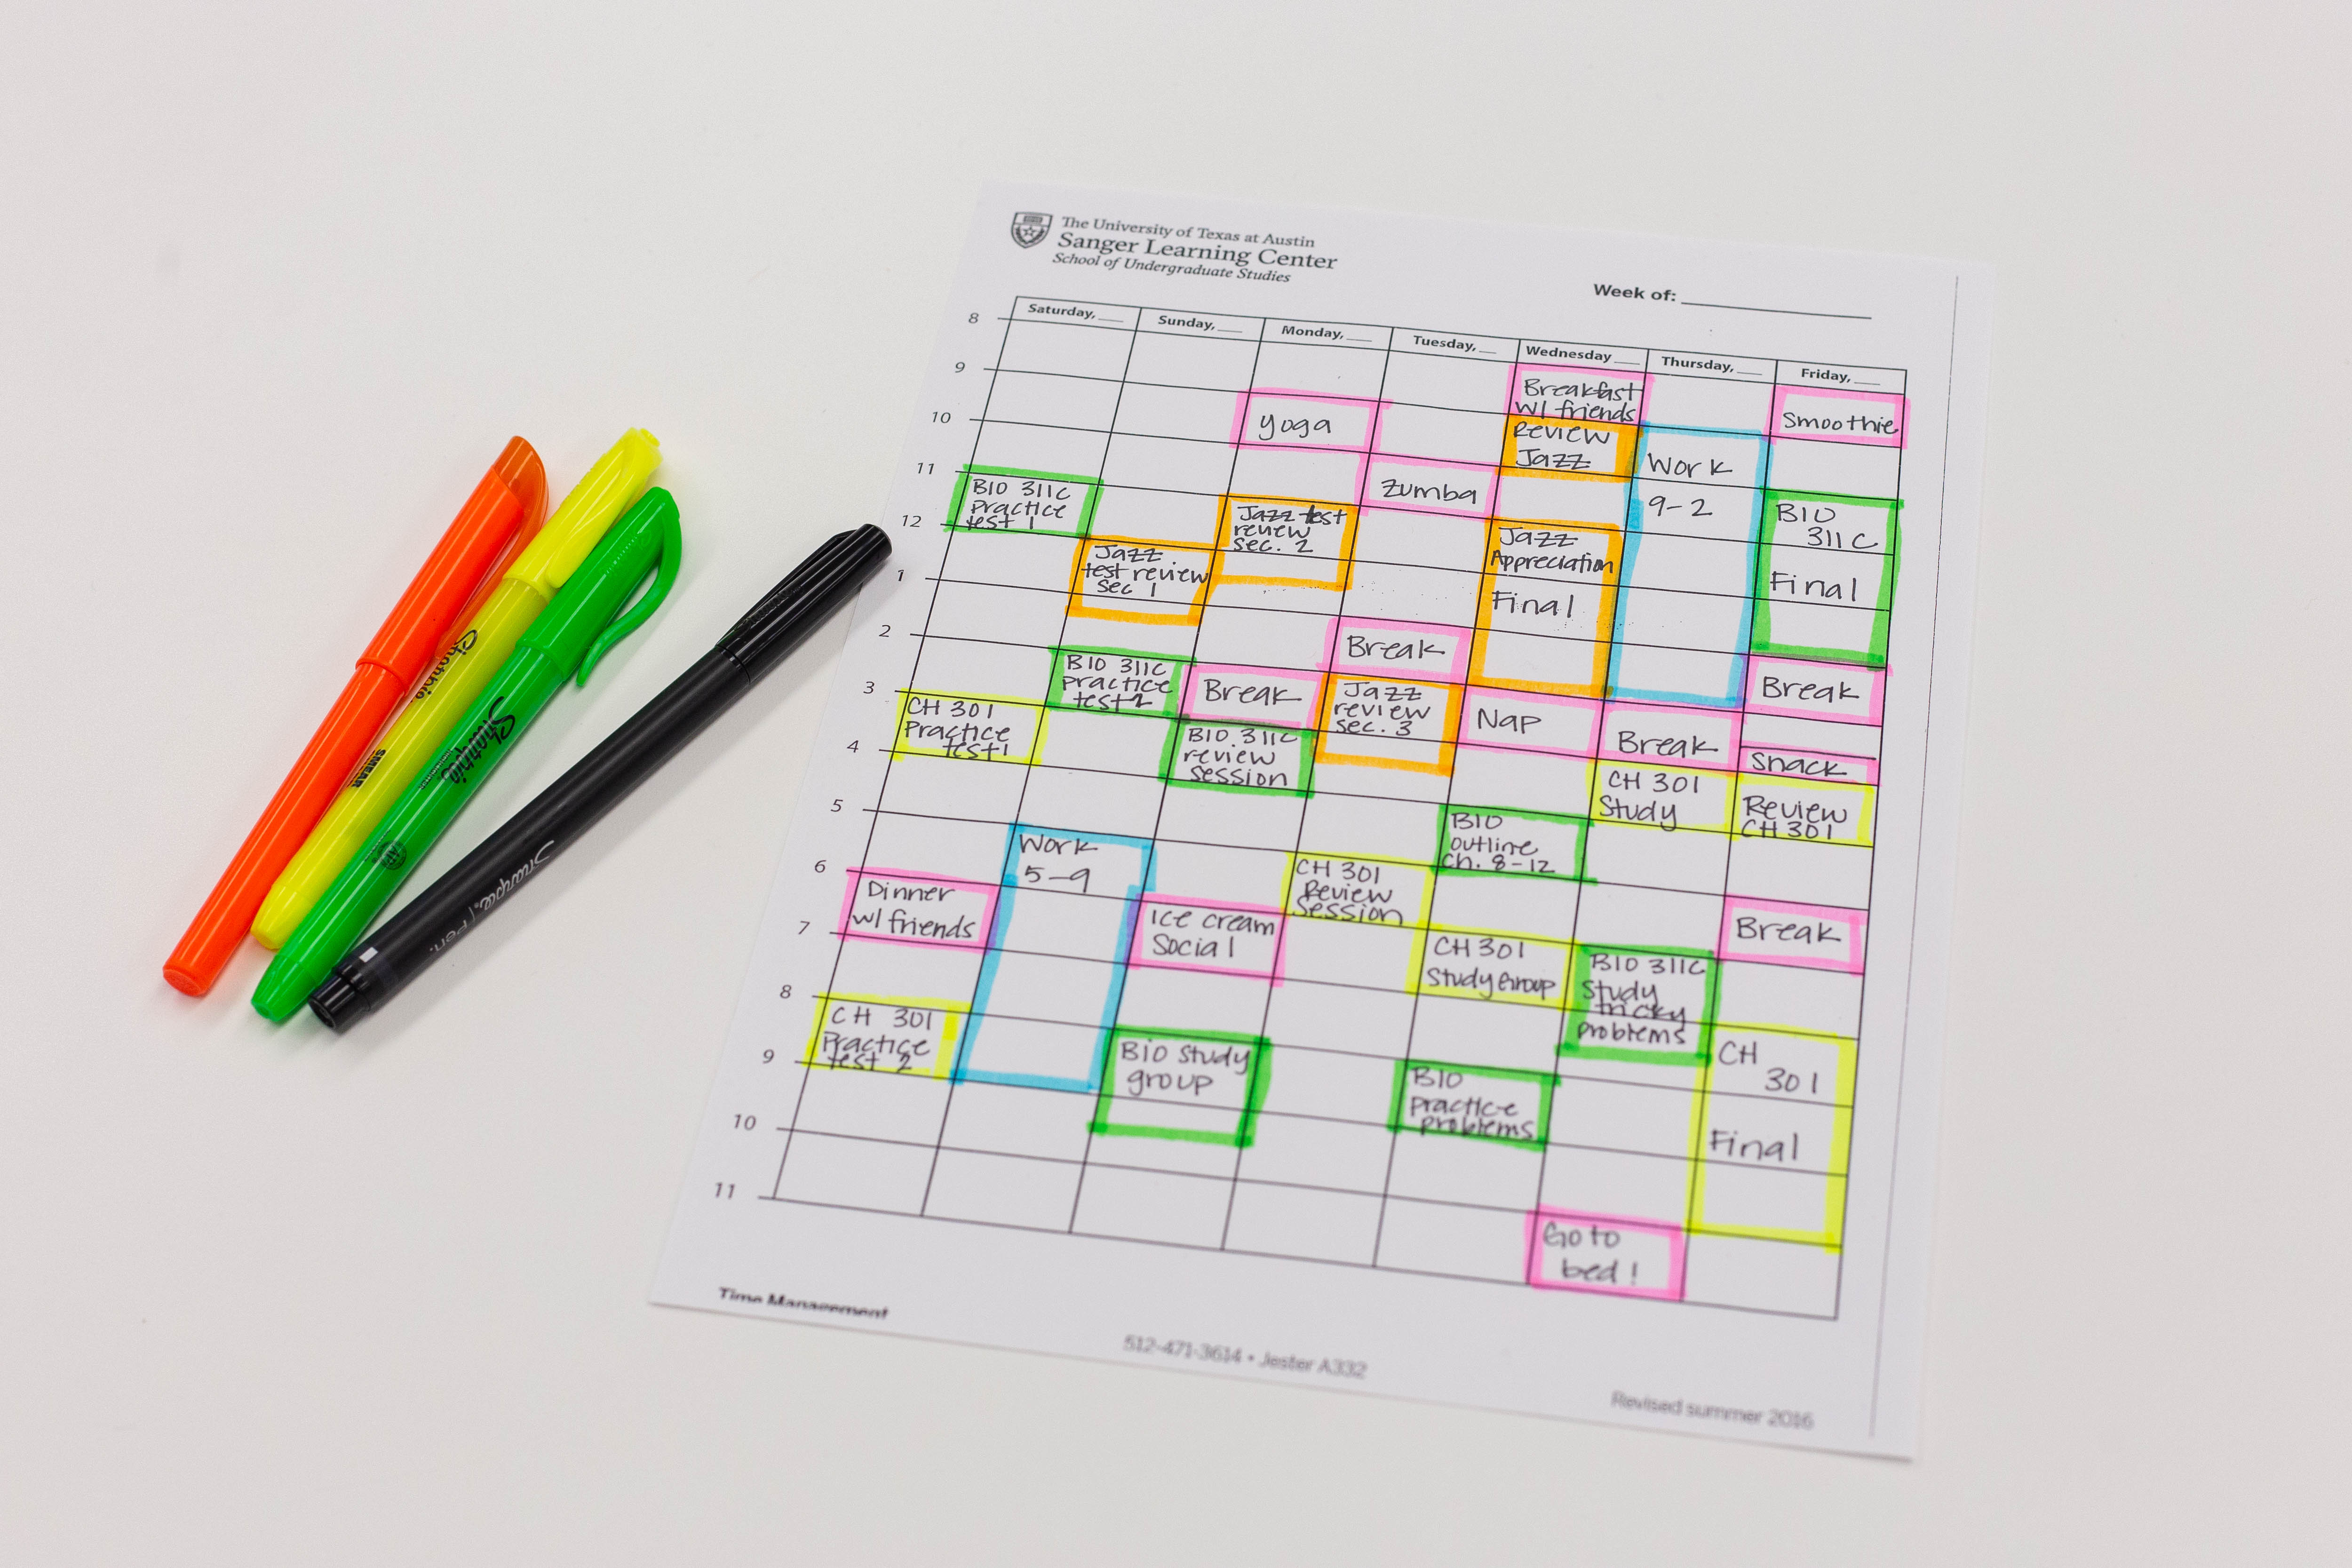 A student's planner and materials